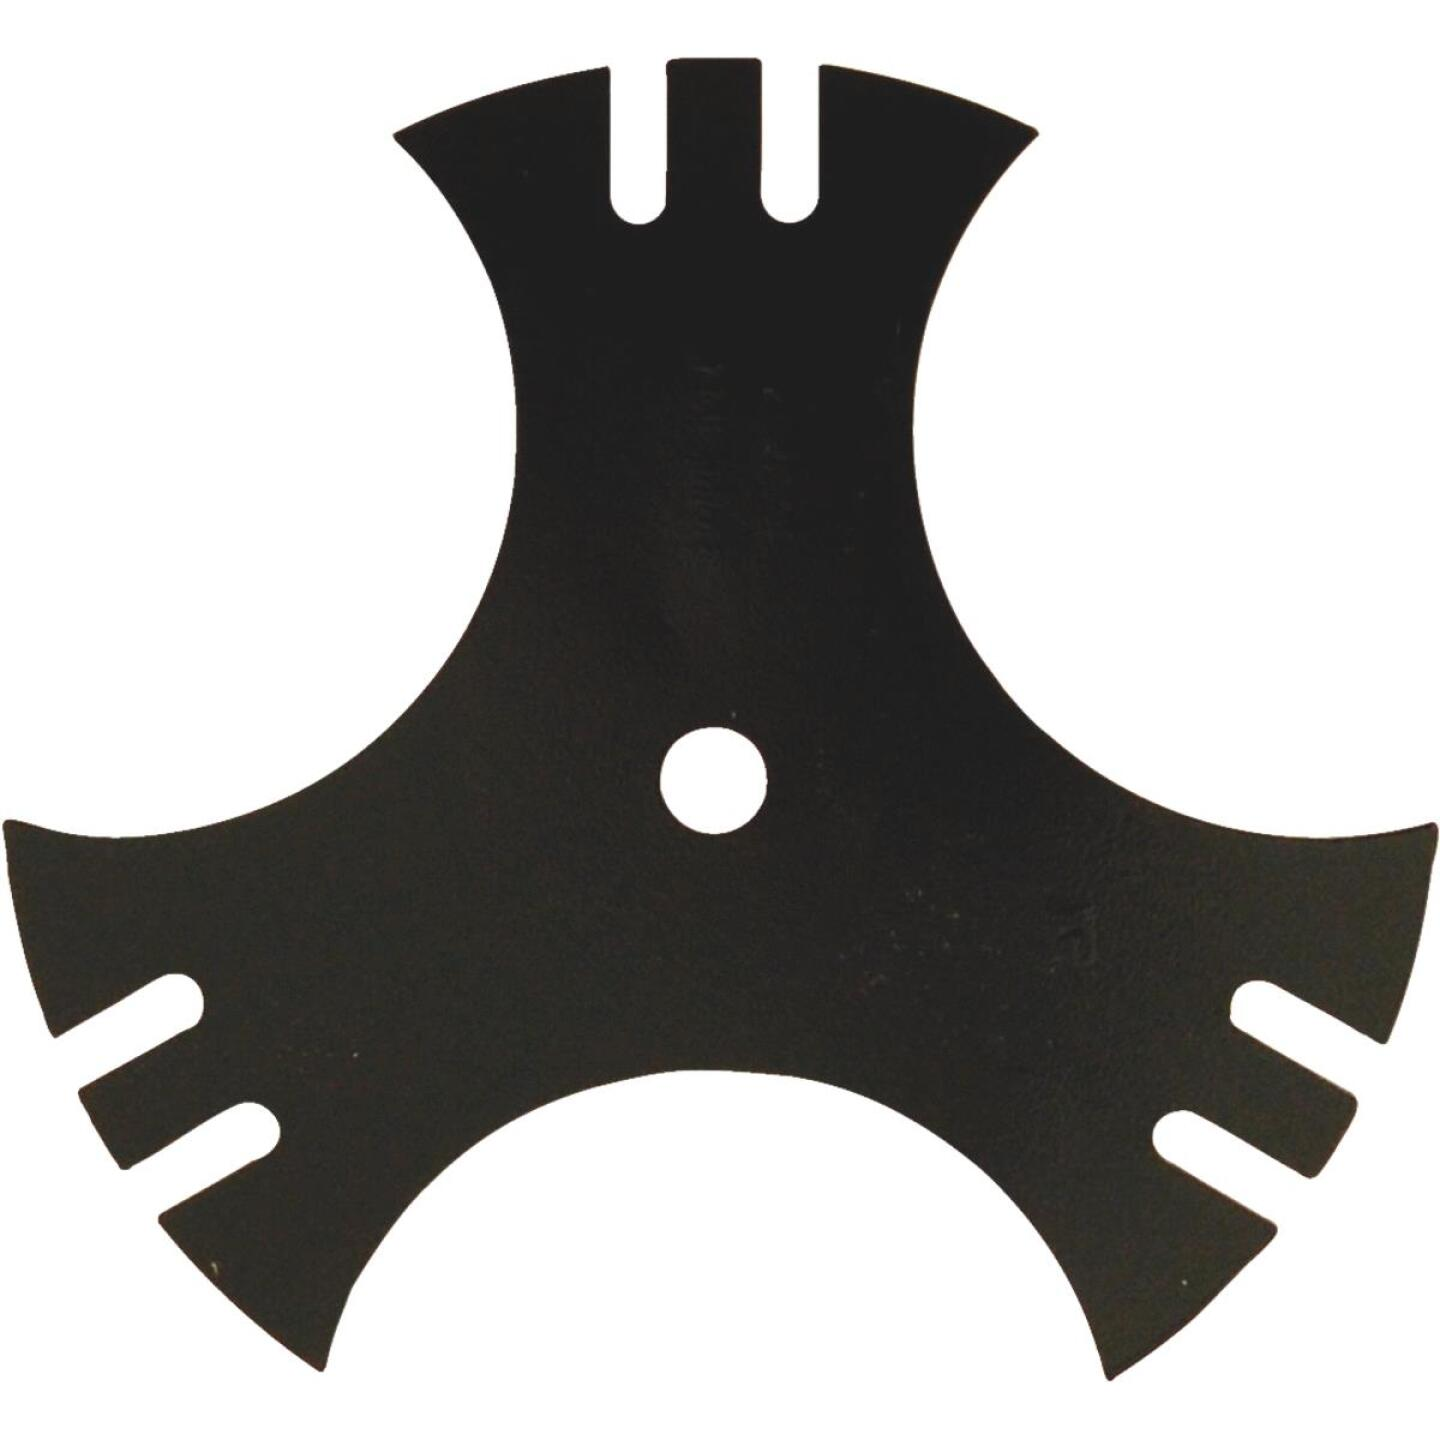 Arnold 3-Sided MTD Edger Blade Image 1